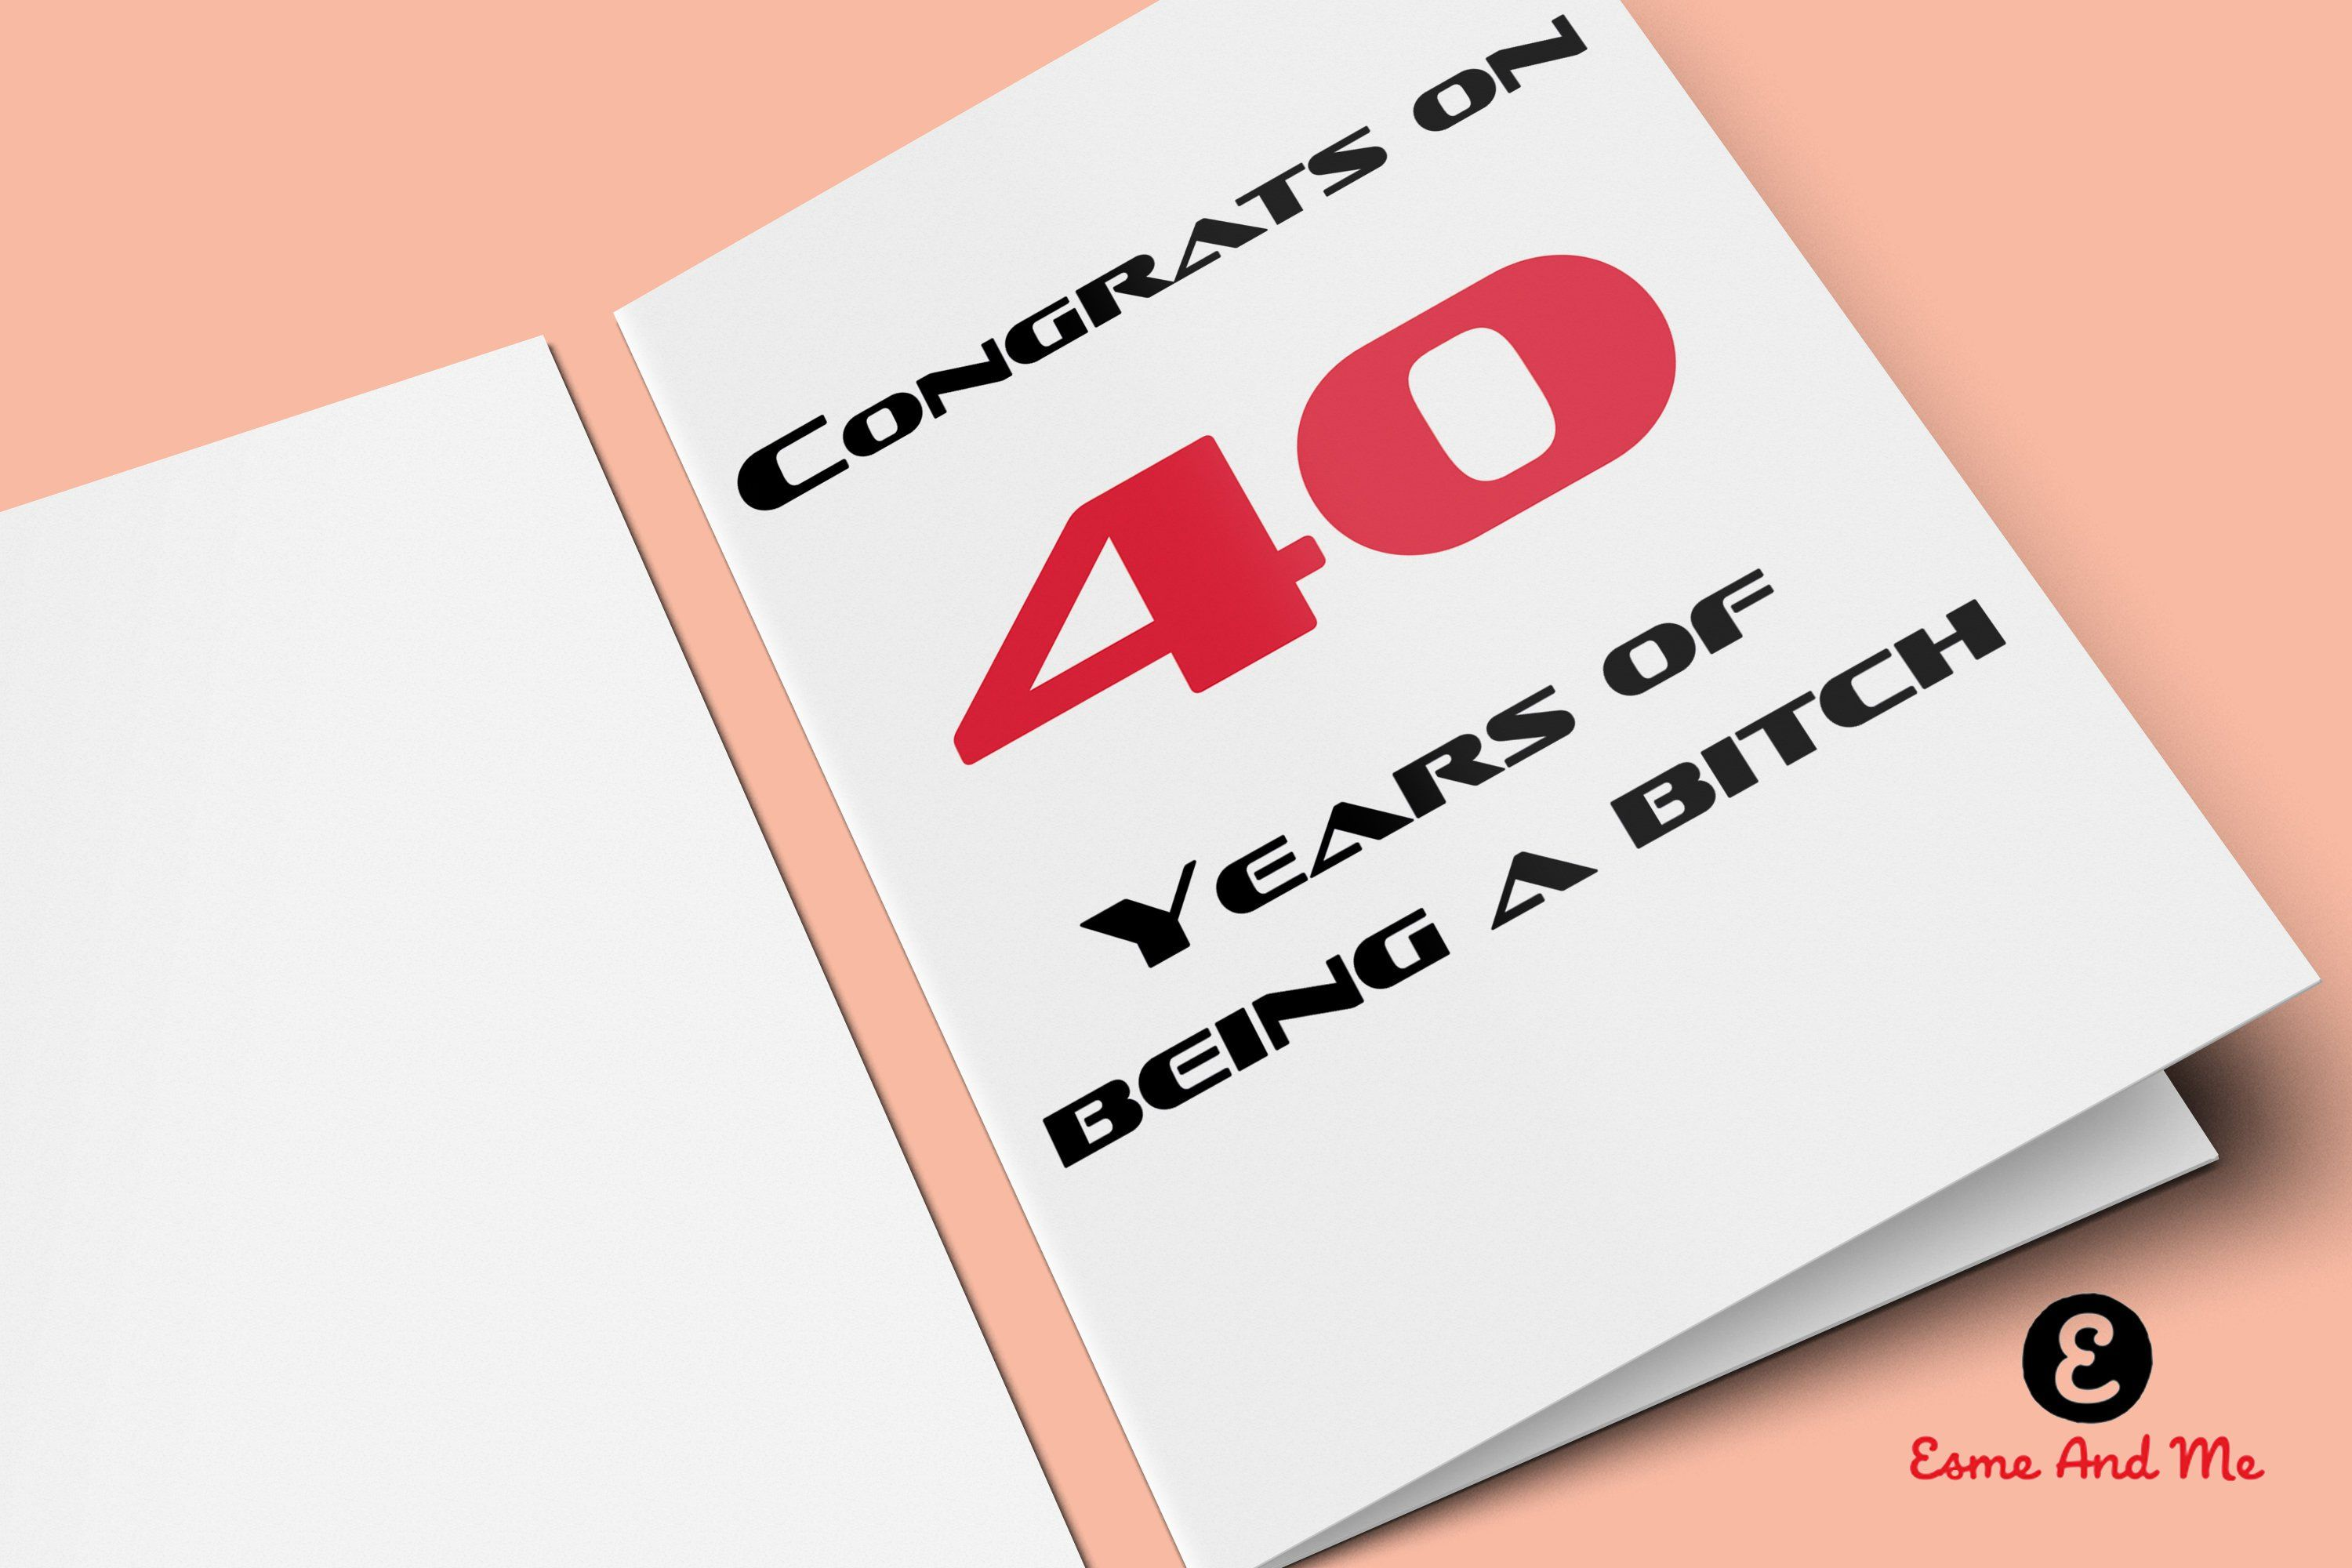 Congrats On 40 Years Of Being A Bitch Funny Birthday Card Rude Cheeky Greetings By EsmeandMeUK Etsy